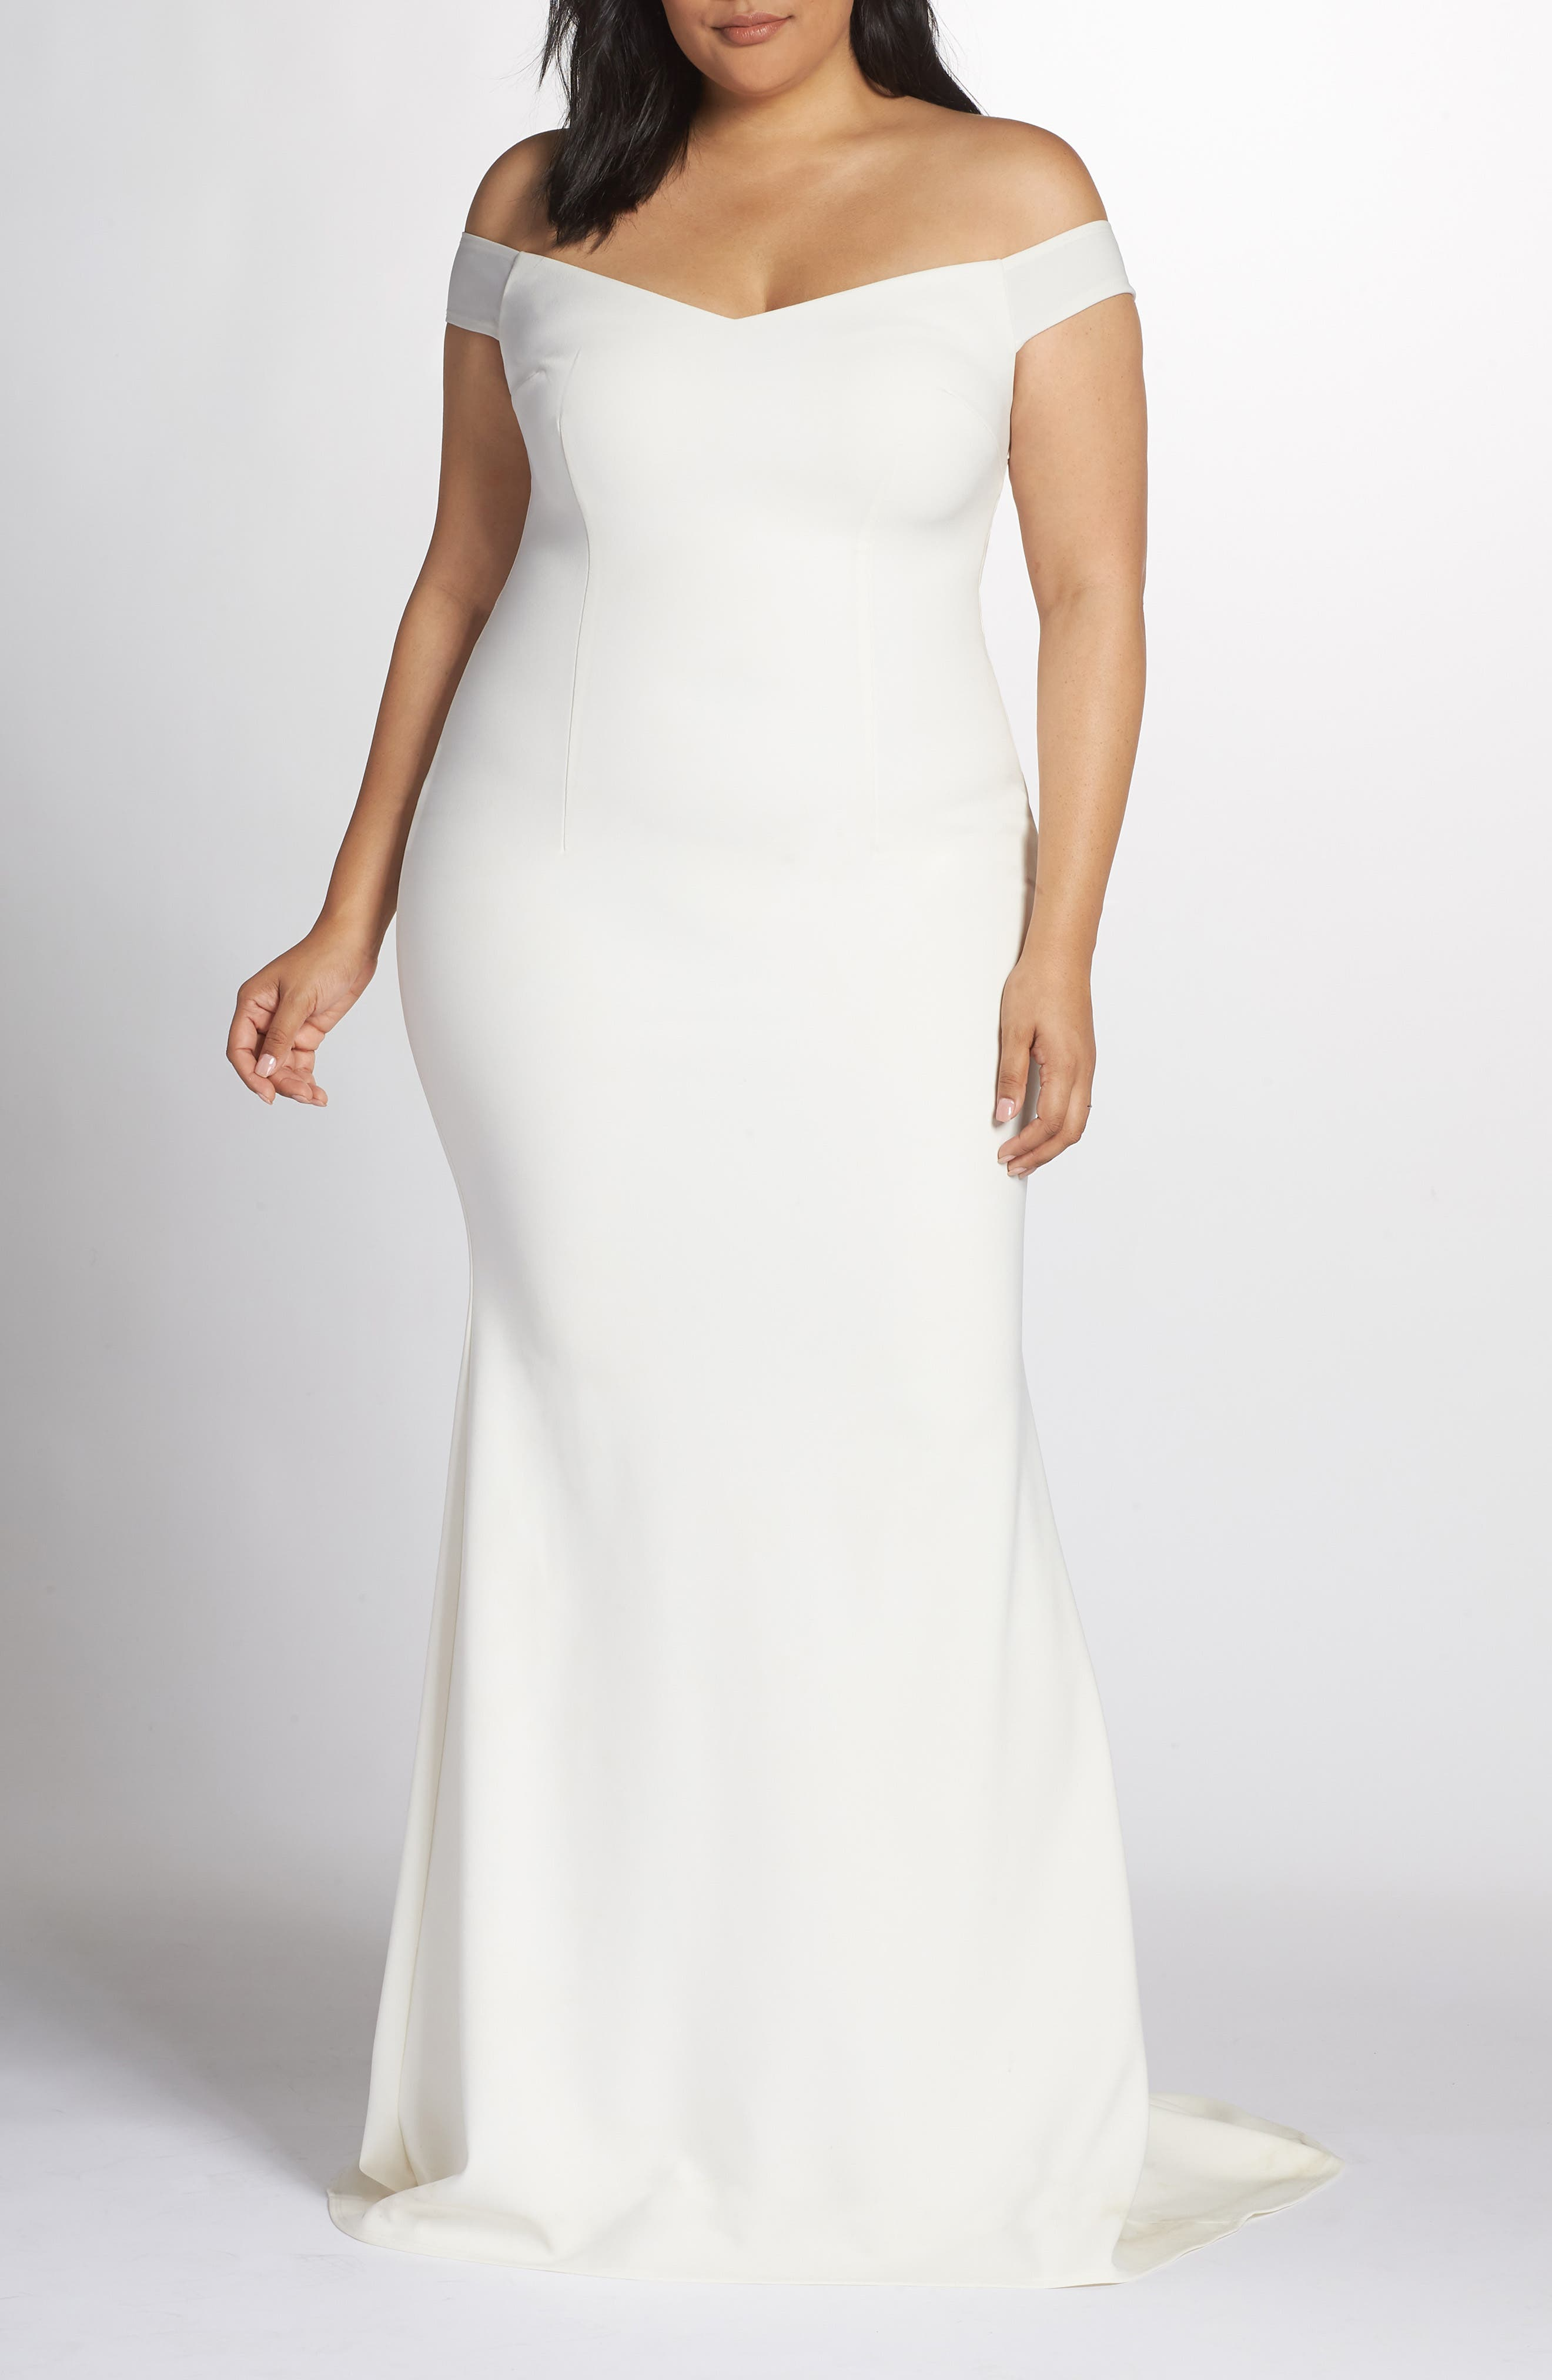 NOEL AND JEAN BY KATIE MAY,                             Alpha Off the Shoulder Dress,                             Main thumbnail 1, color,                             IVORY